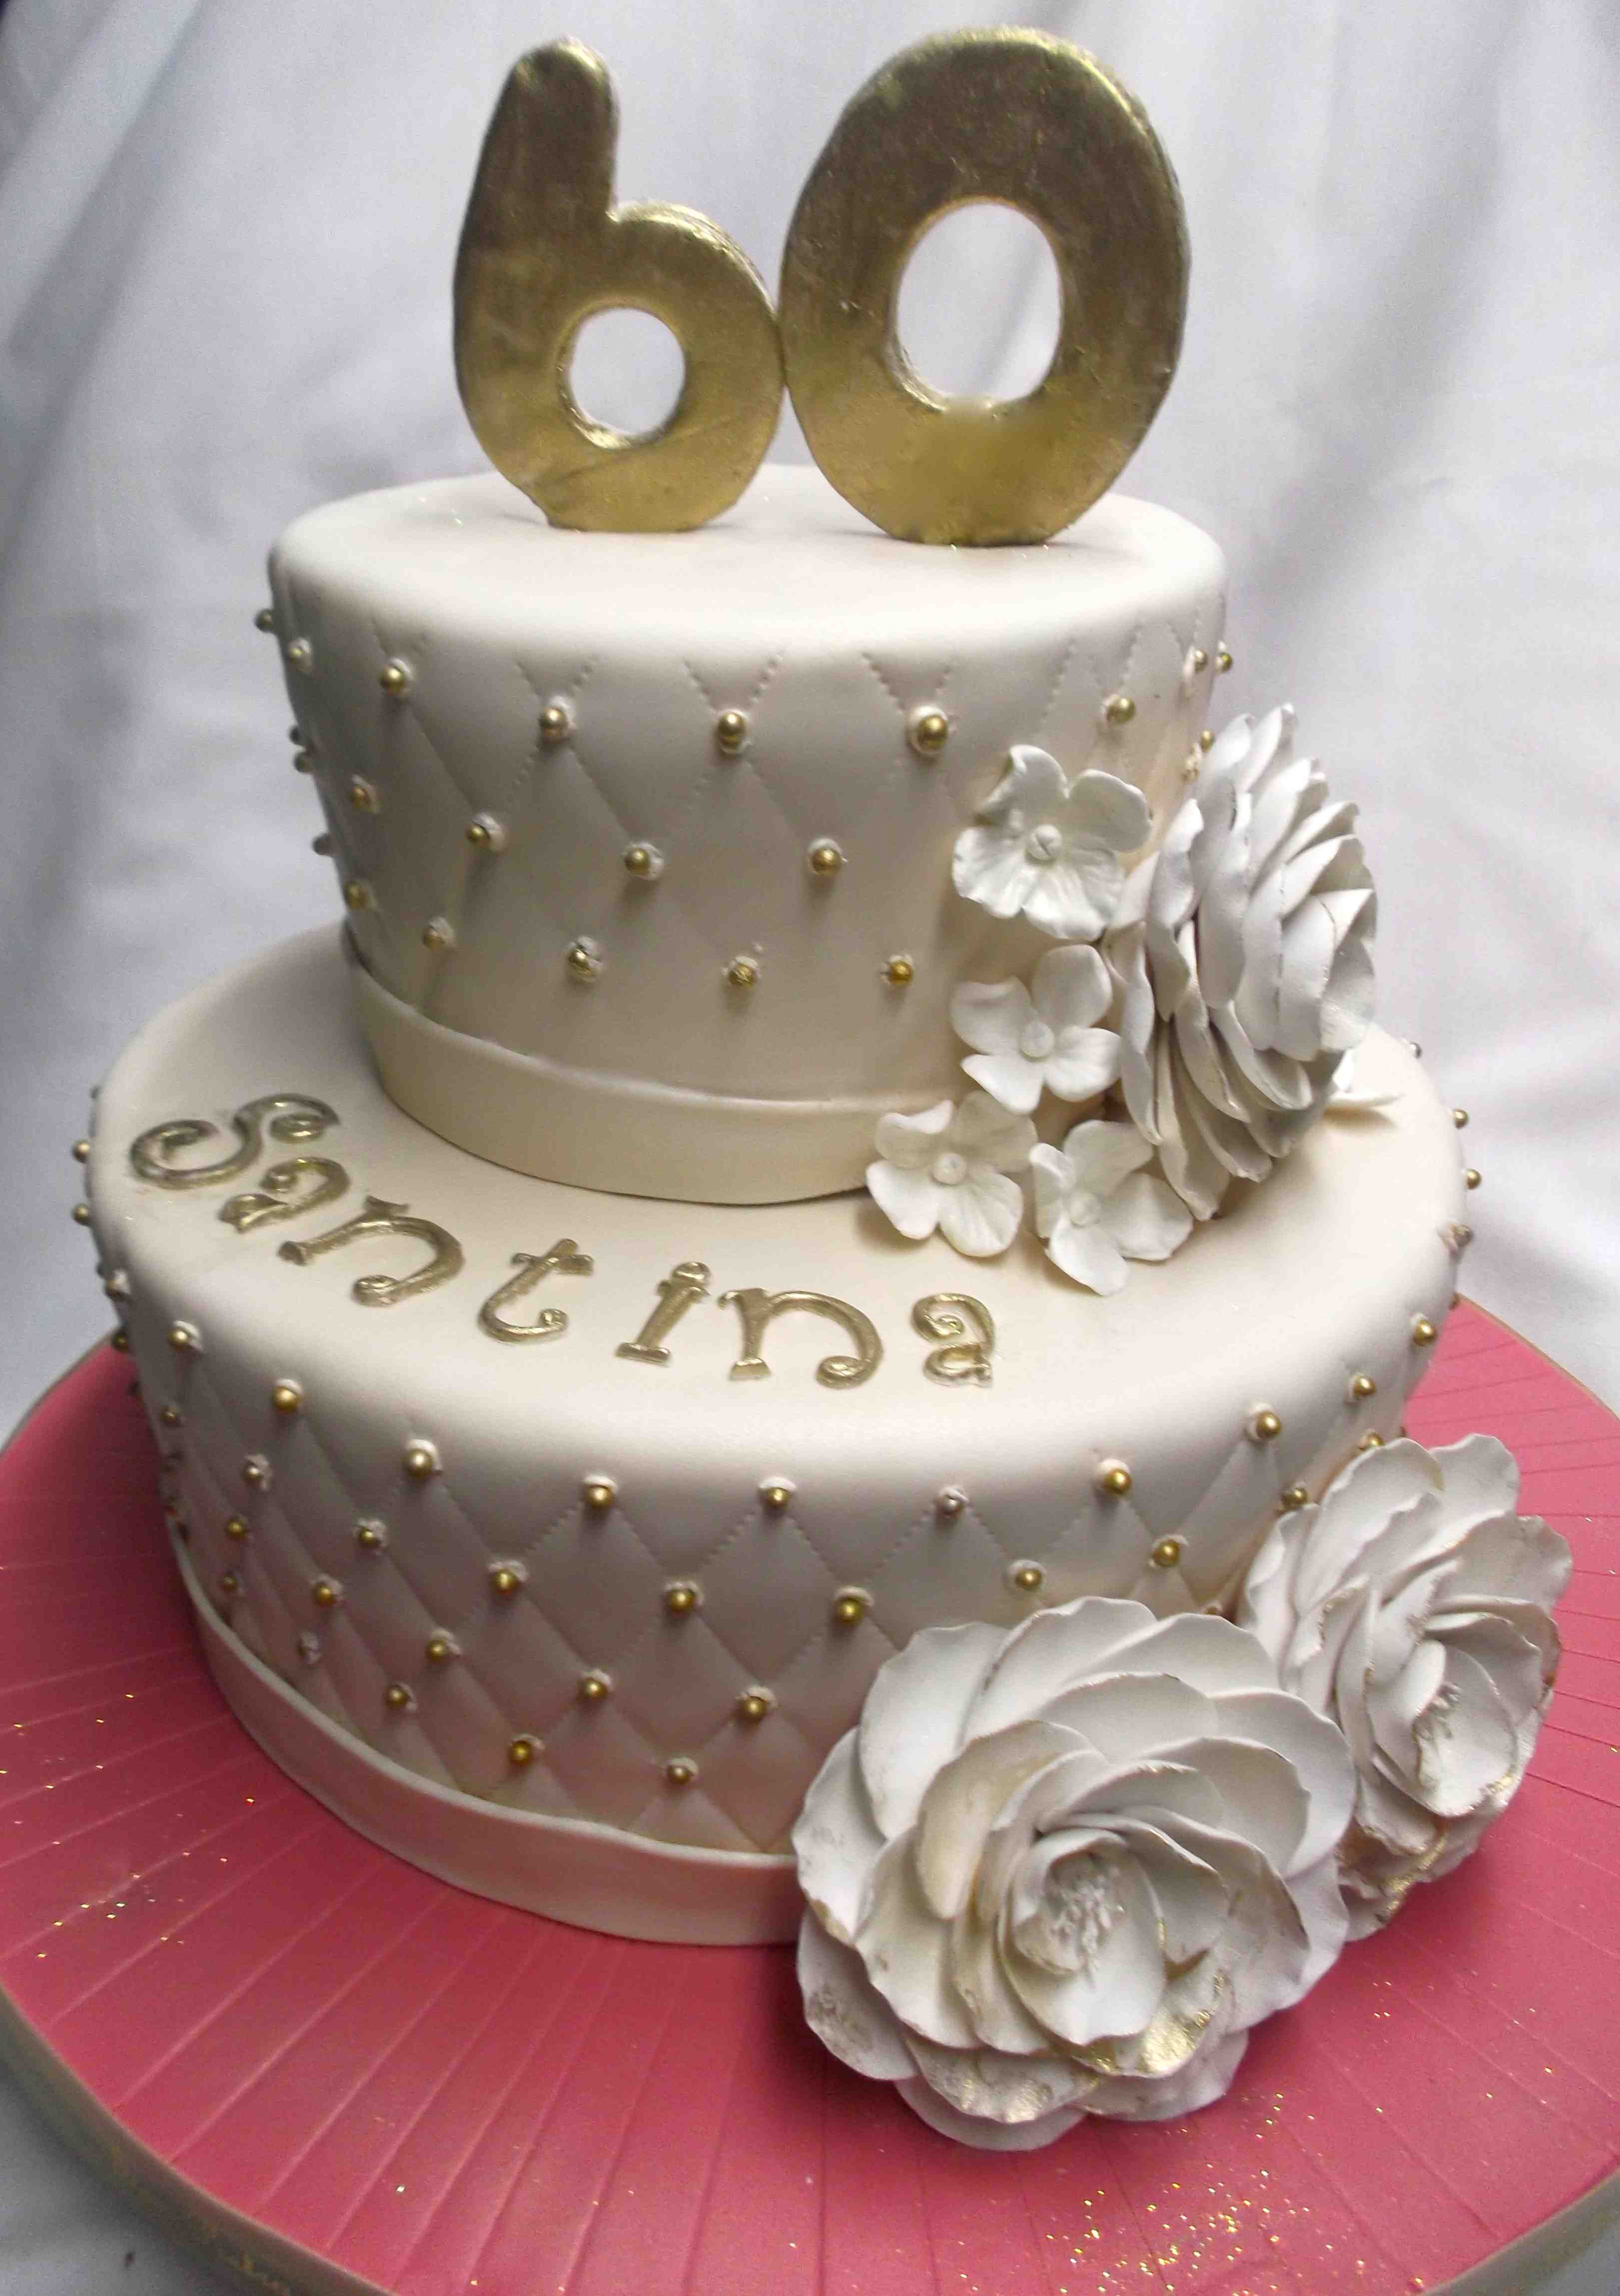 Birthday Cakes Birthday Cake Designs Submited Images